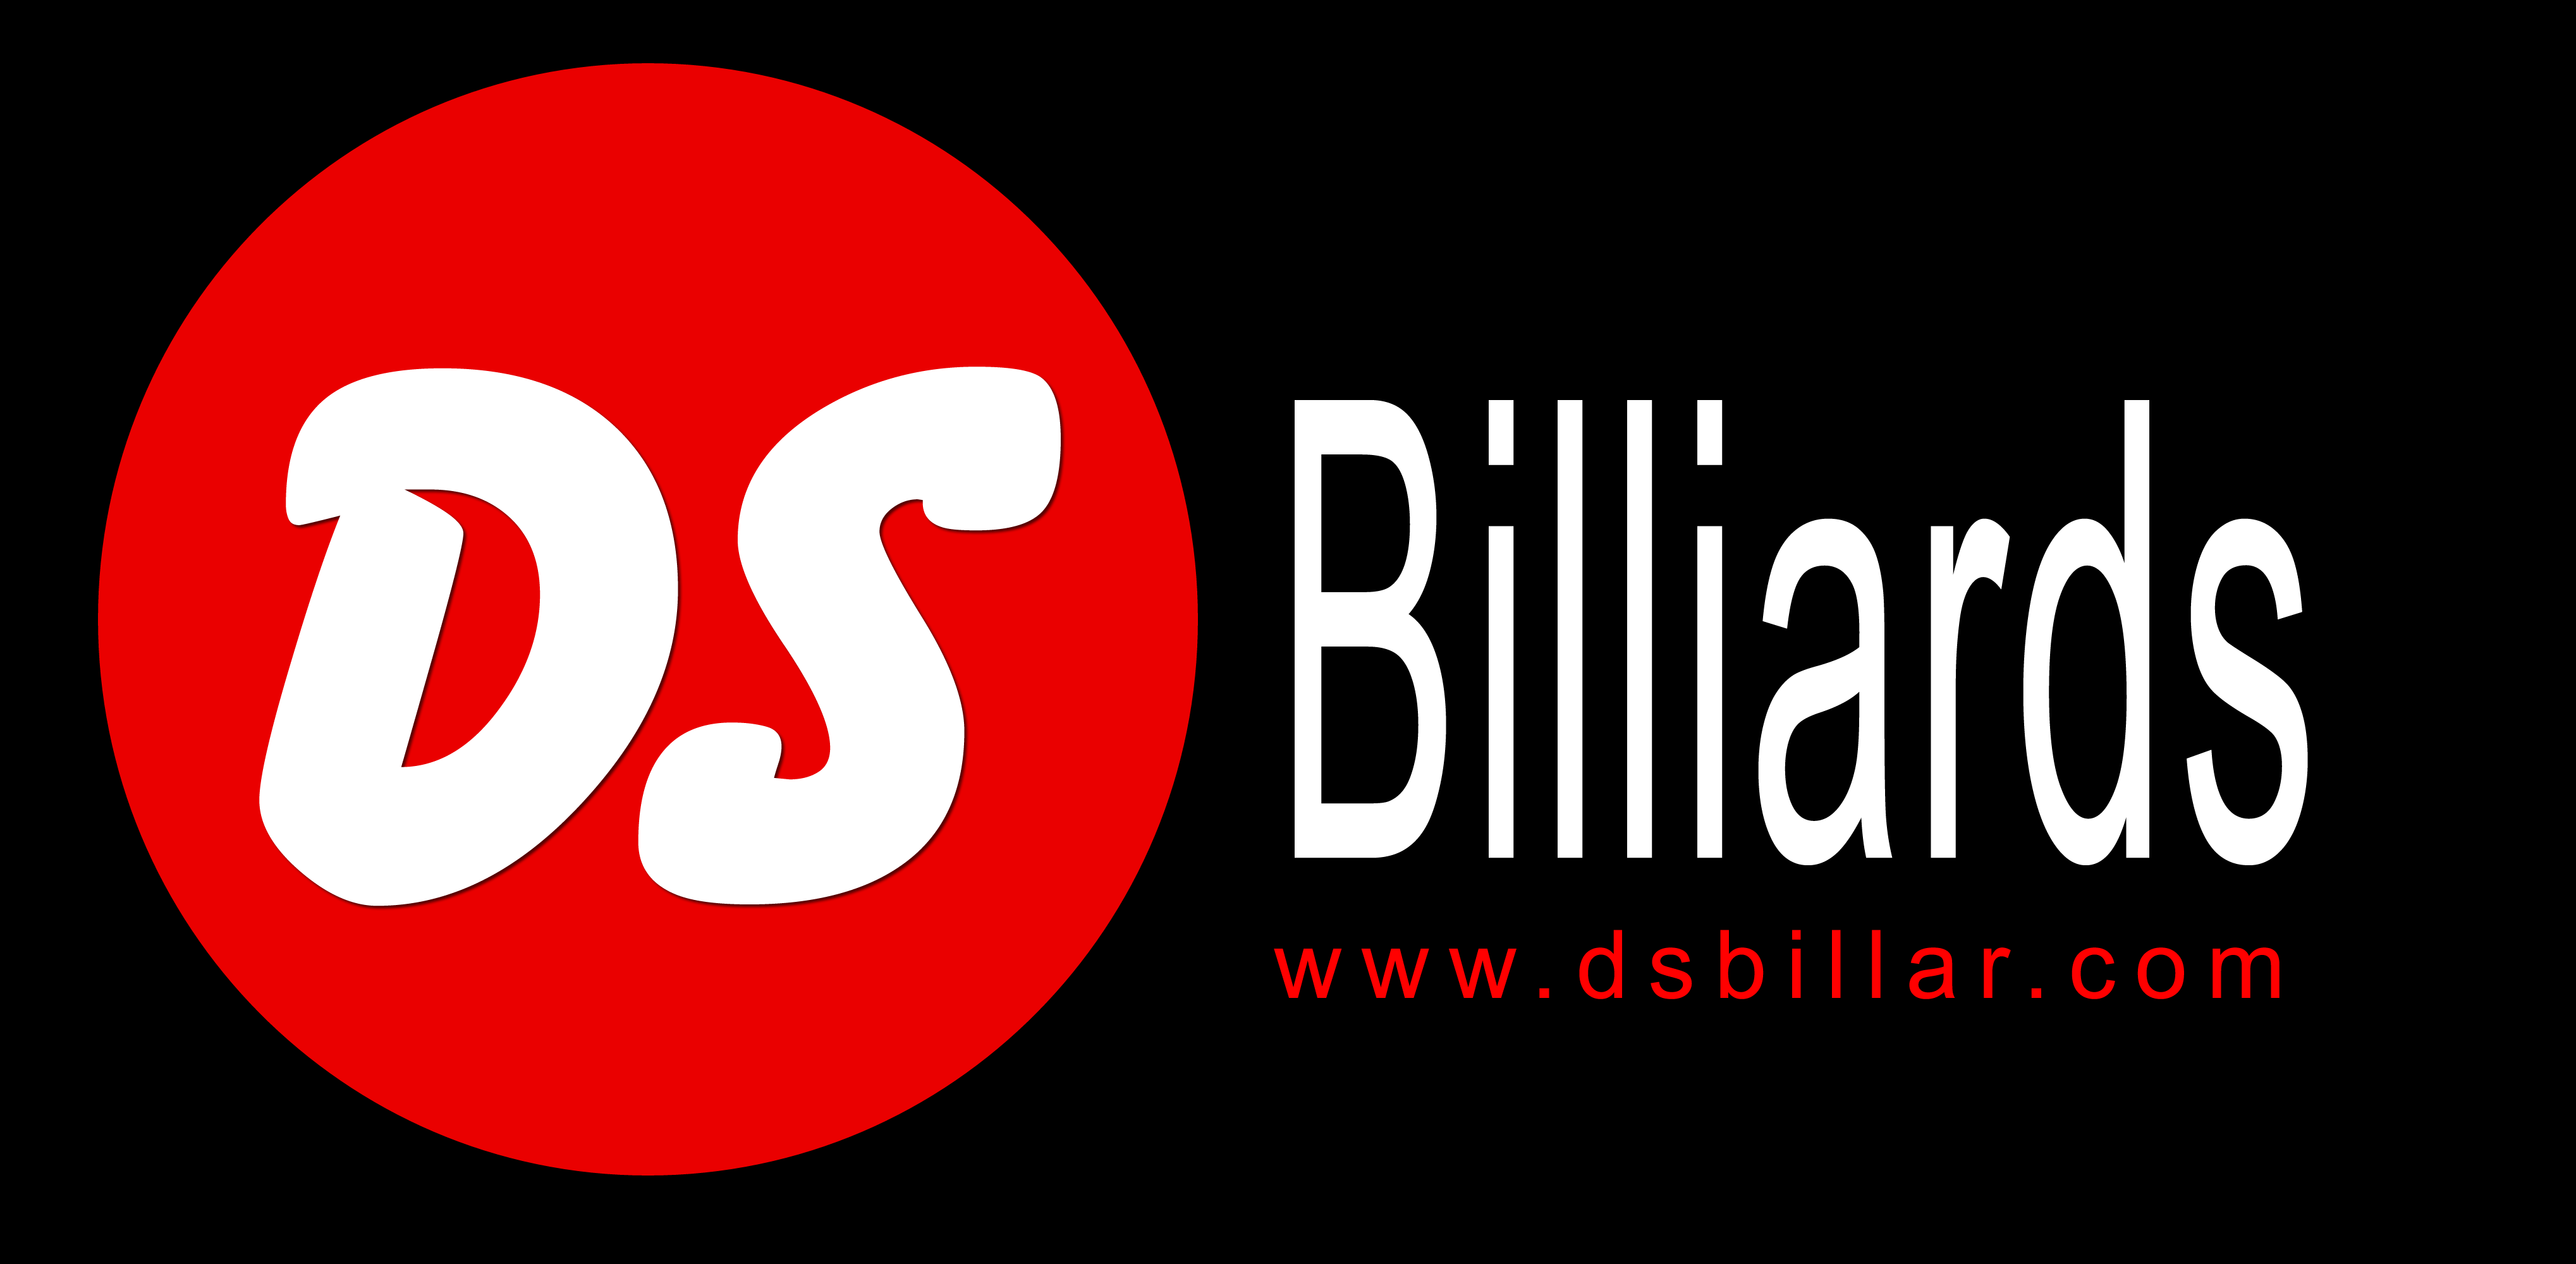 DS BILLIARDS